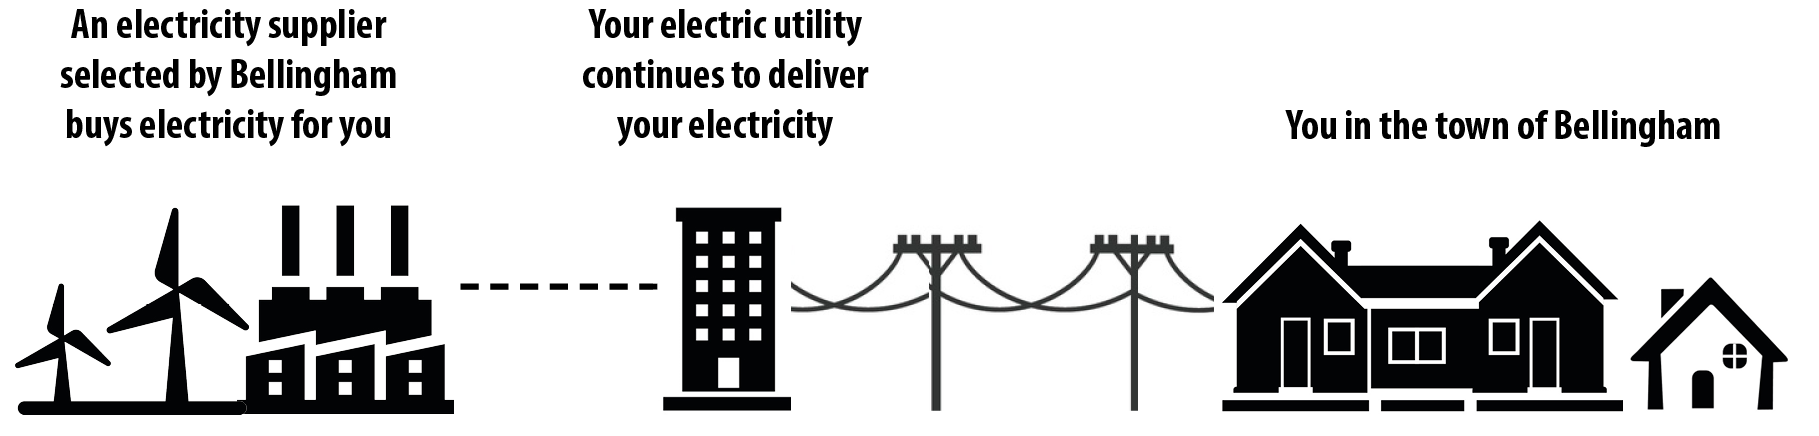 Diagram showing an electricity supplier, the utility, and the town of Bellingham